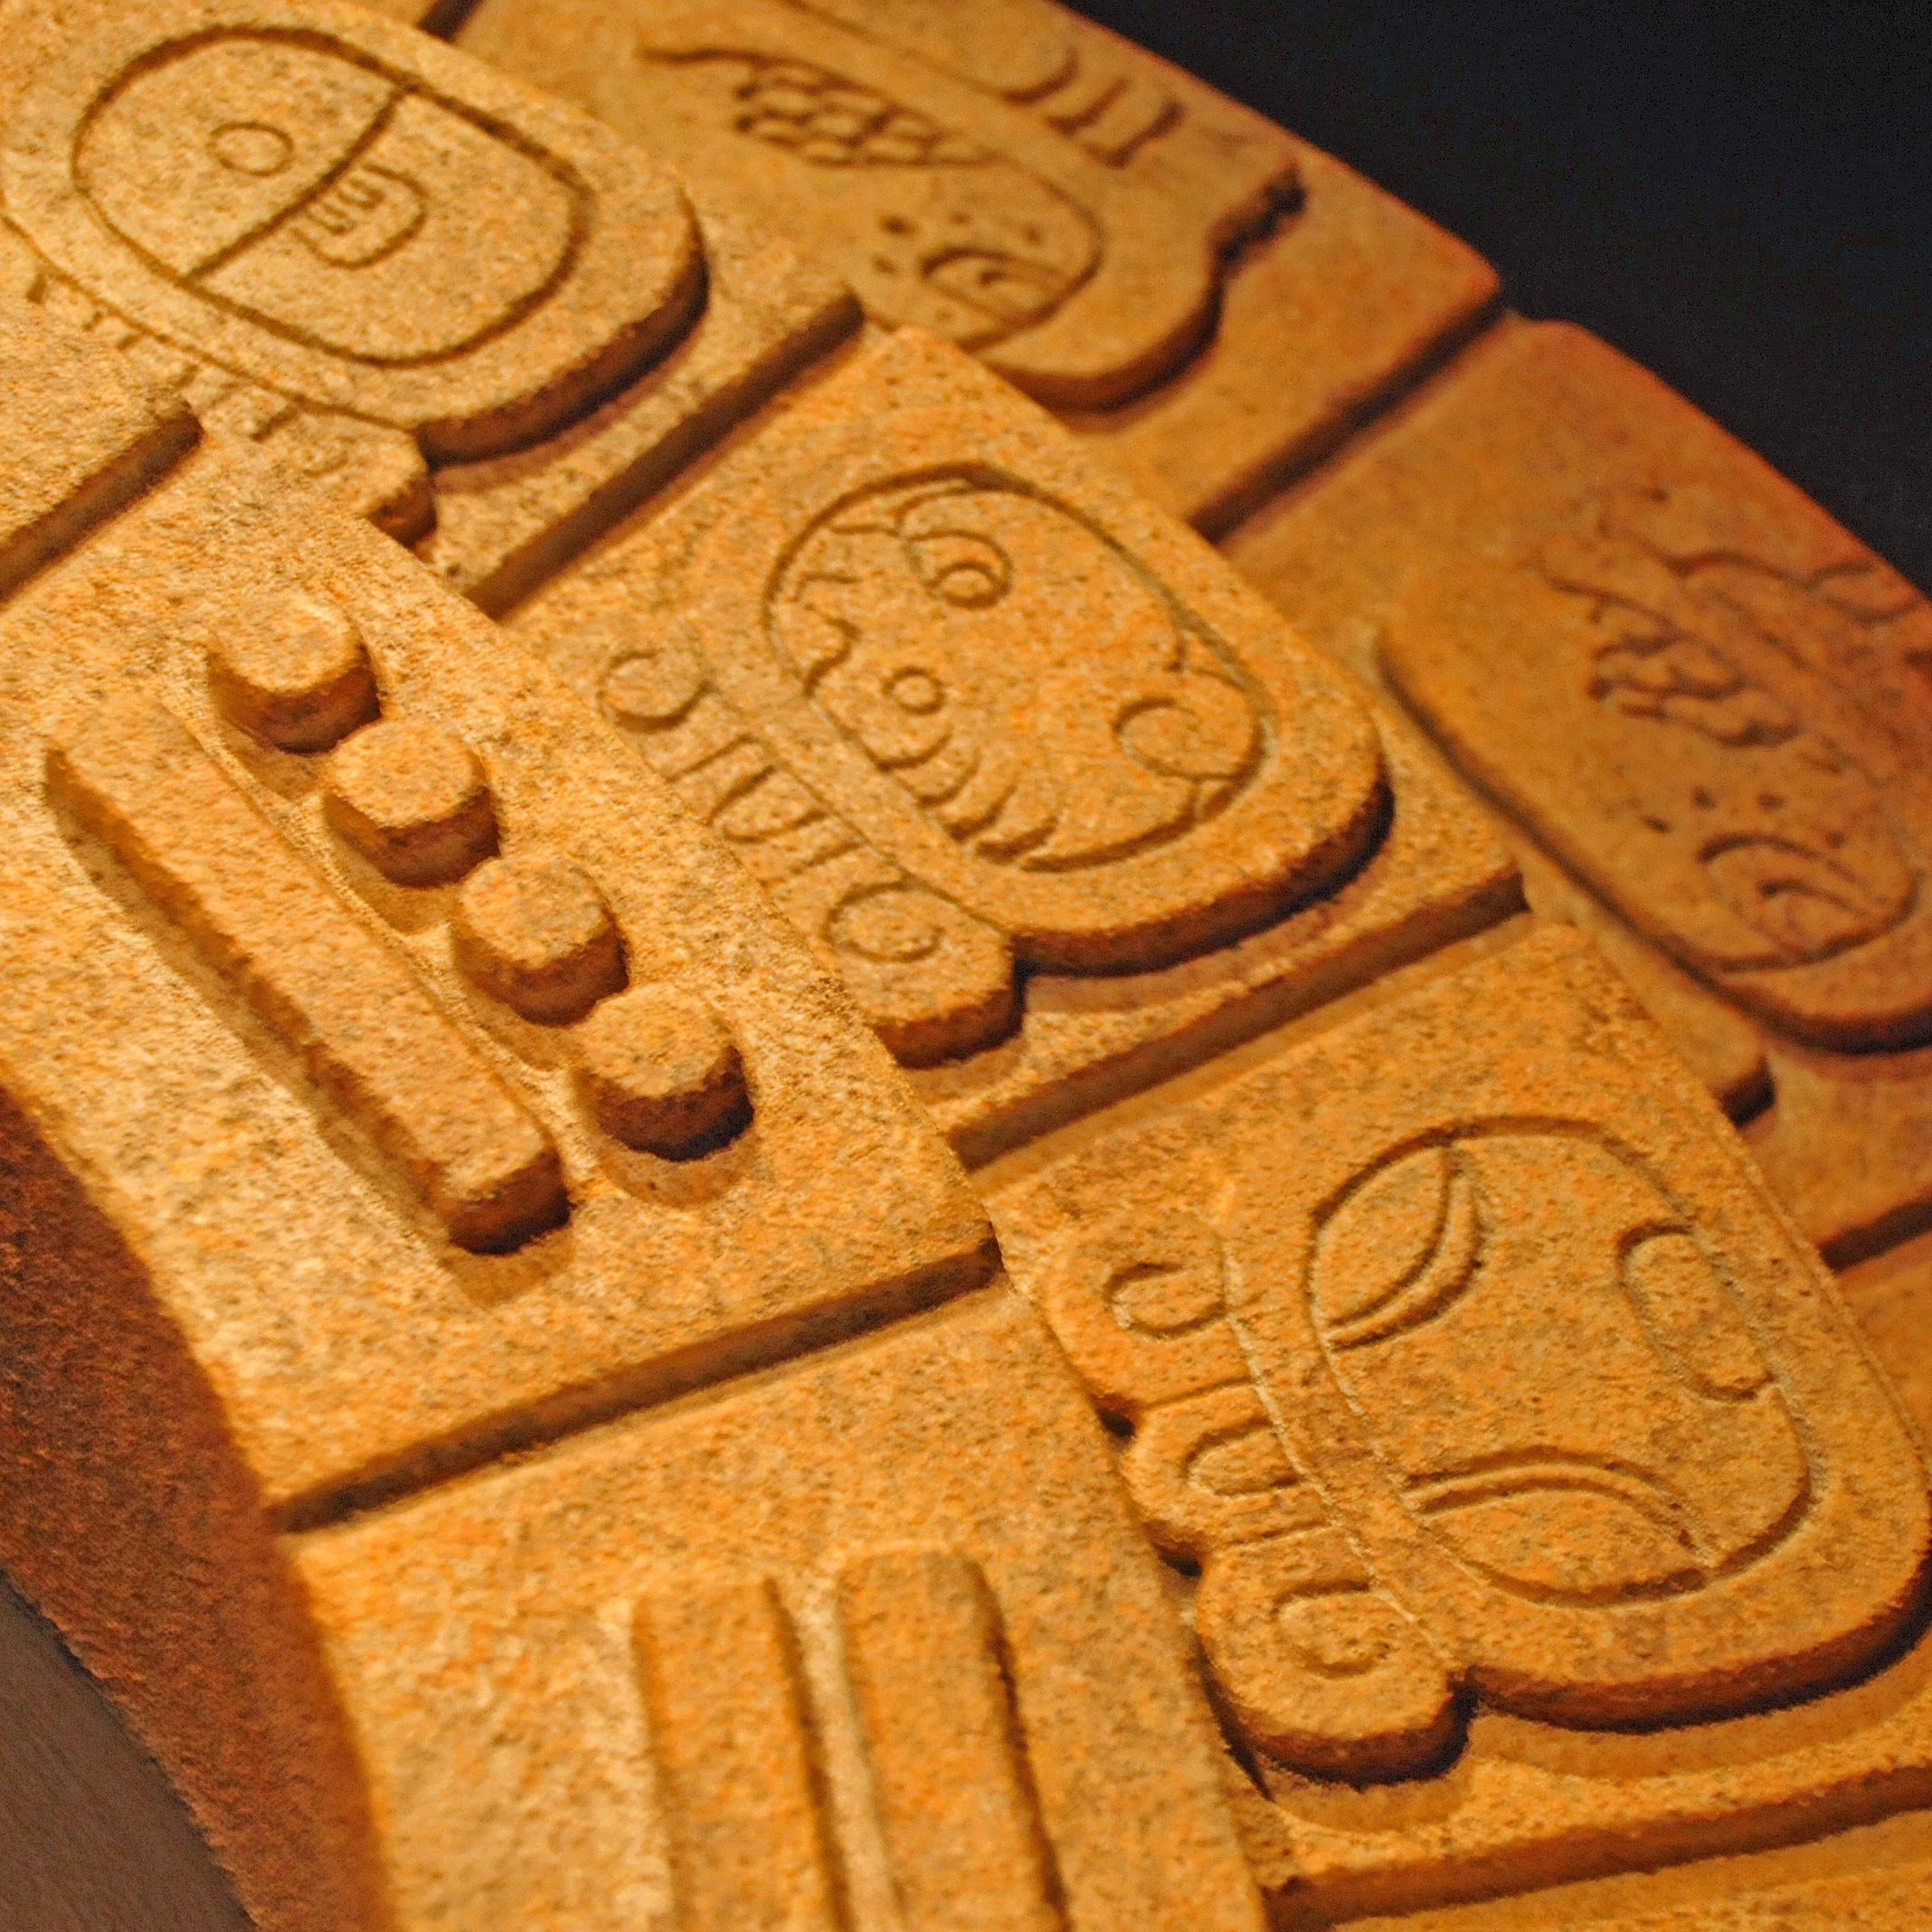 mayan calendar dating Using the largest set of radiocarbon dates ever obtained from a single maya site calendar ua in the radiocarbon dating helped ua researchers develop a.